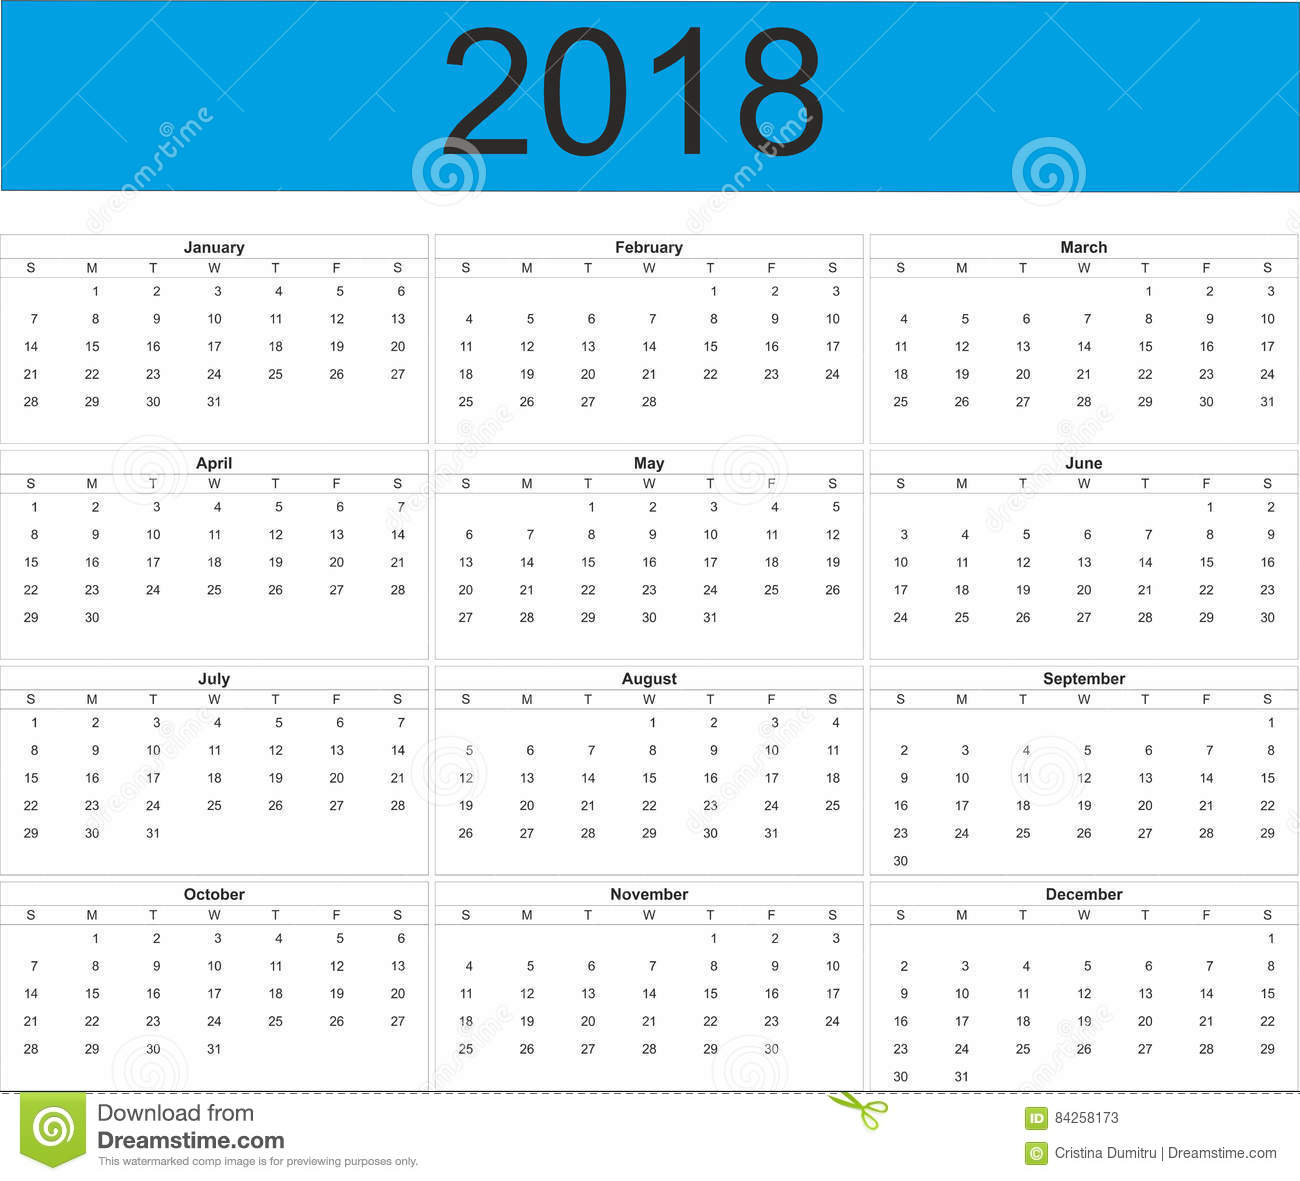 Downloadable calendar 2018